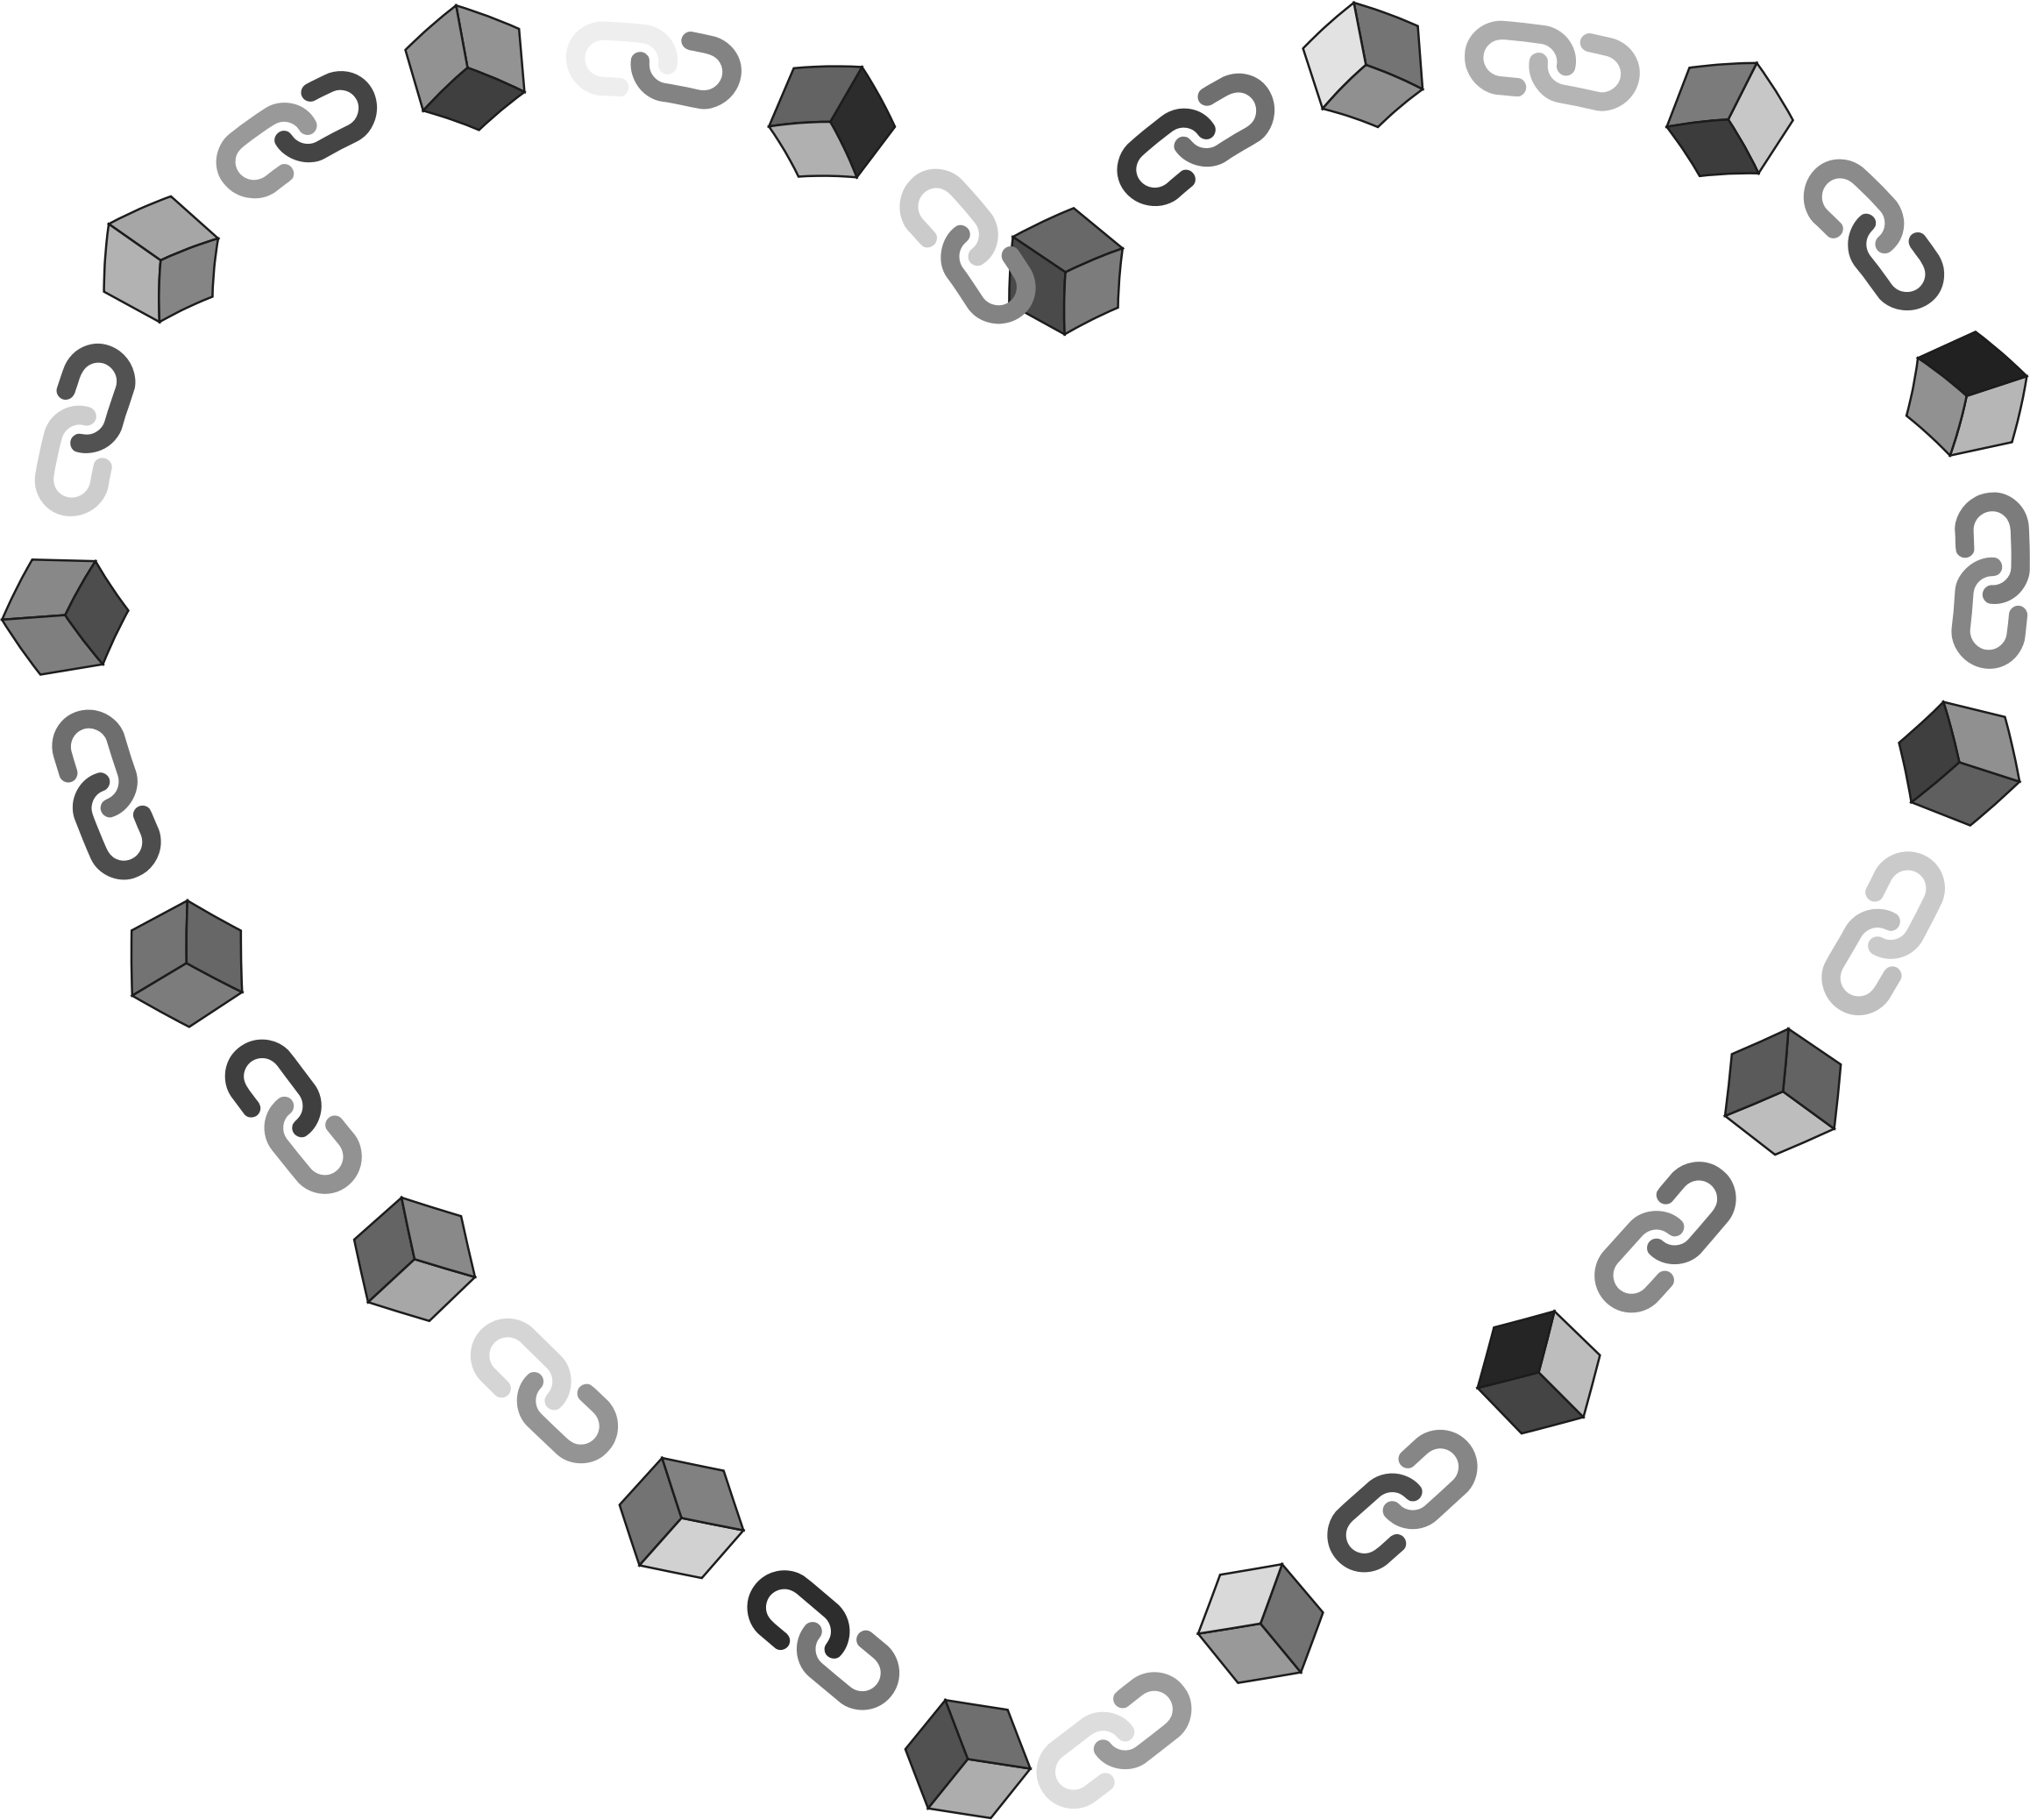 Heart money clipart black and white Clipart - Blockchain Heart black and white